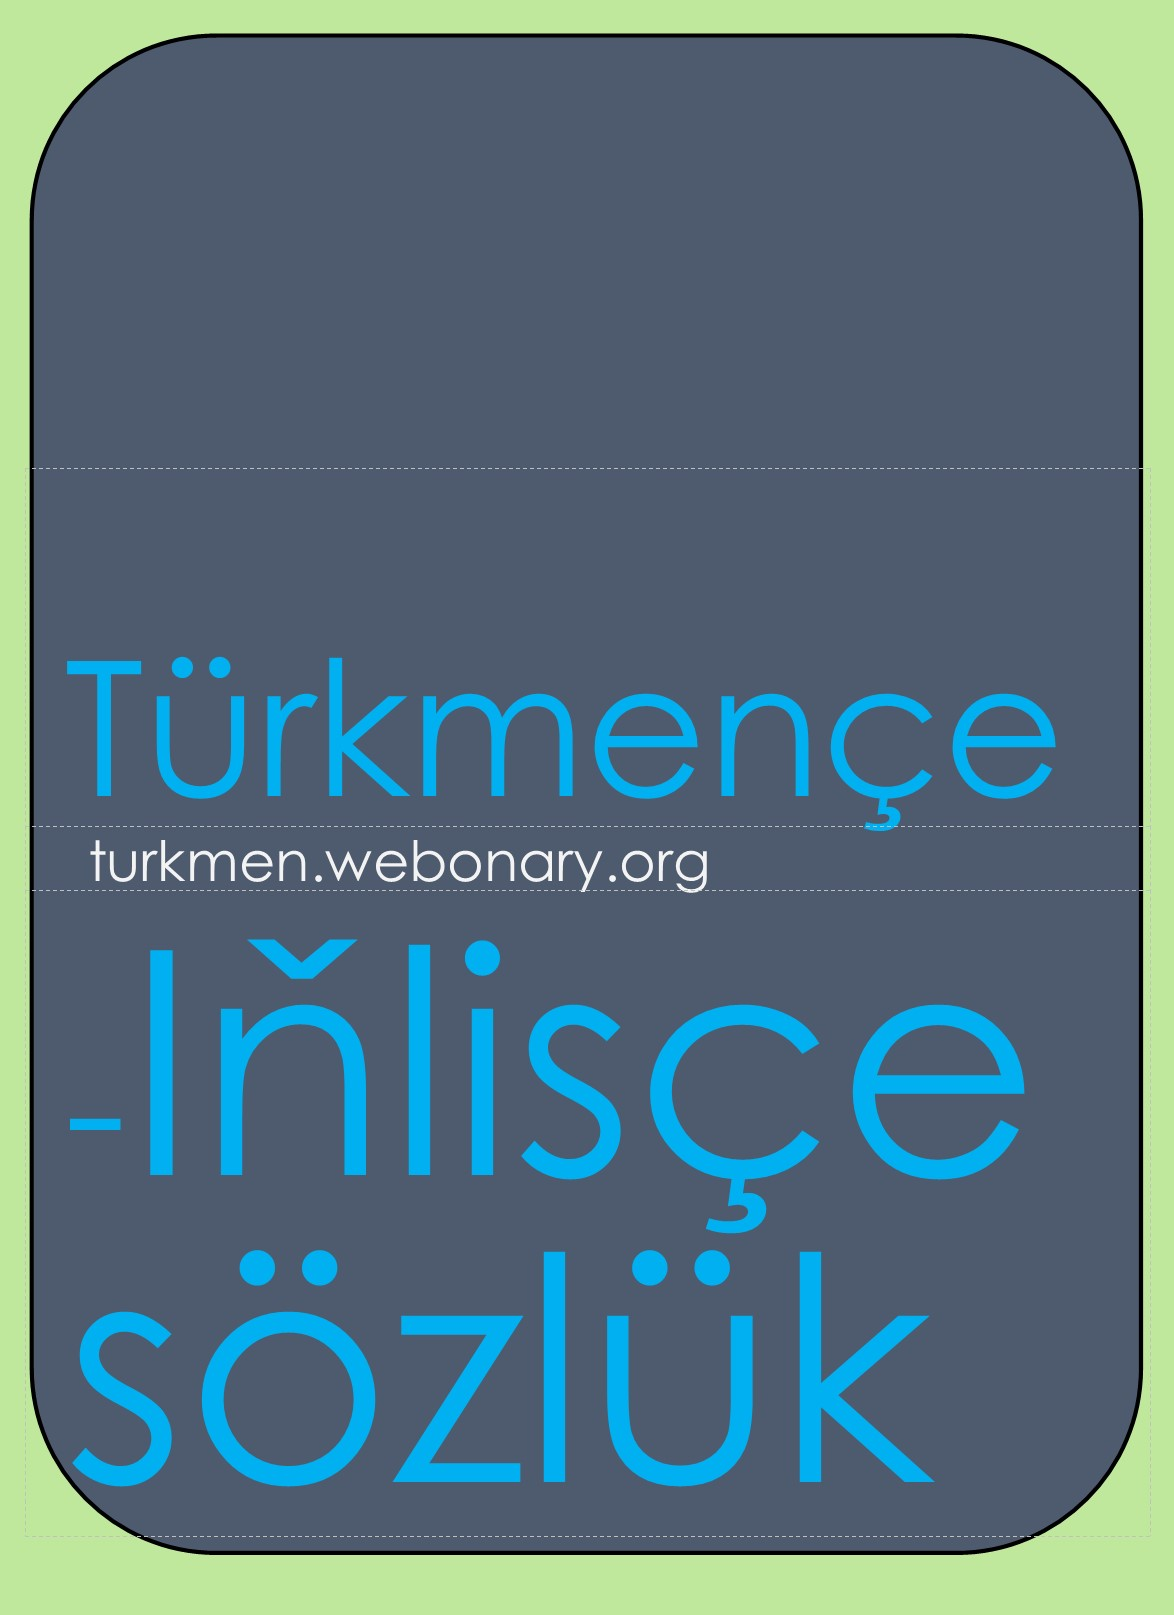 Turkmen-English dictionary cover page for webonary site